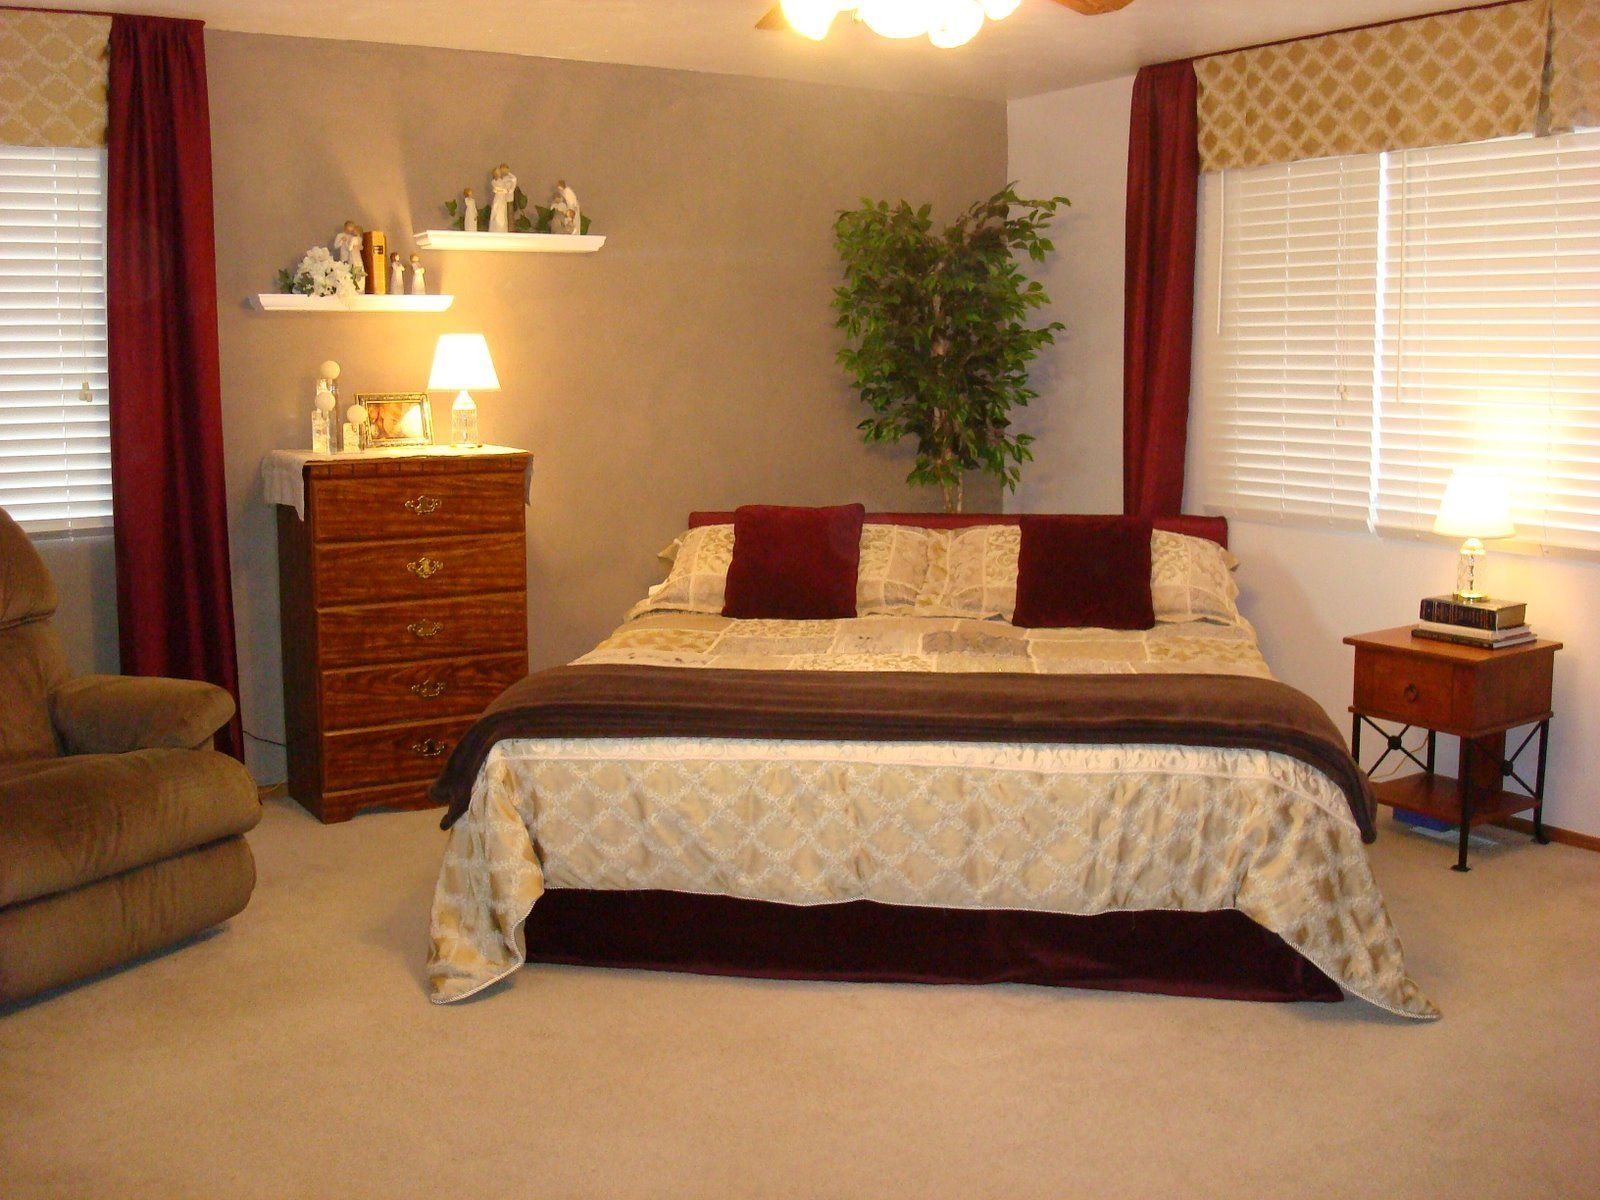 Corner Bed Placement Idea Small Bedroom Furniture Throughout Corner Bed Ideas In 2020 Bedroom Furniture Placement Bedroom Arrangement Bedroom Furniture Layout